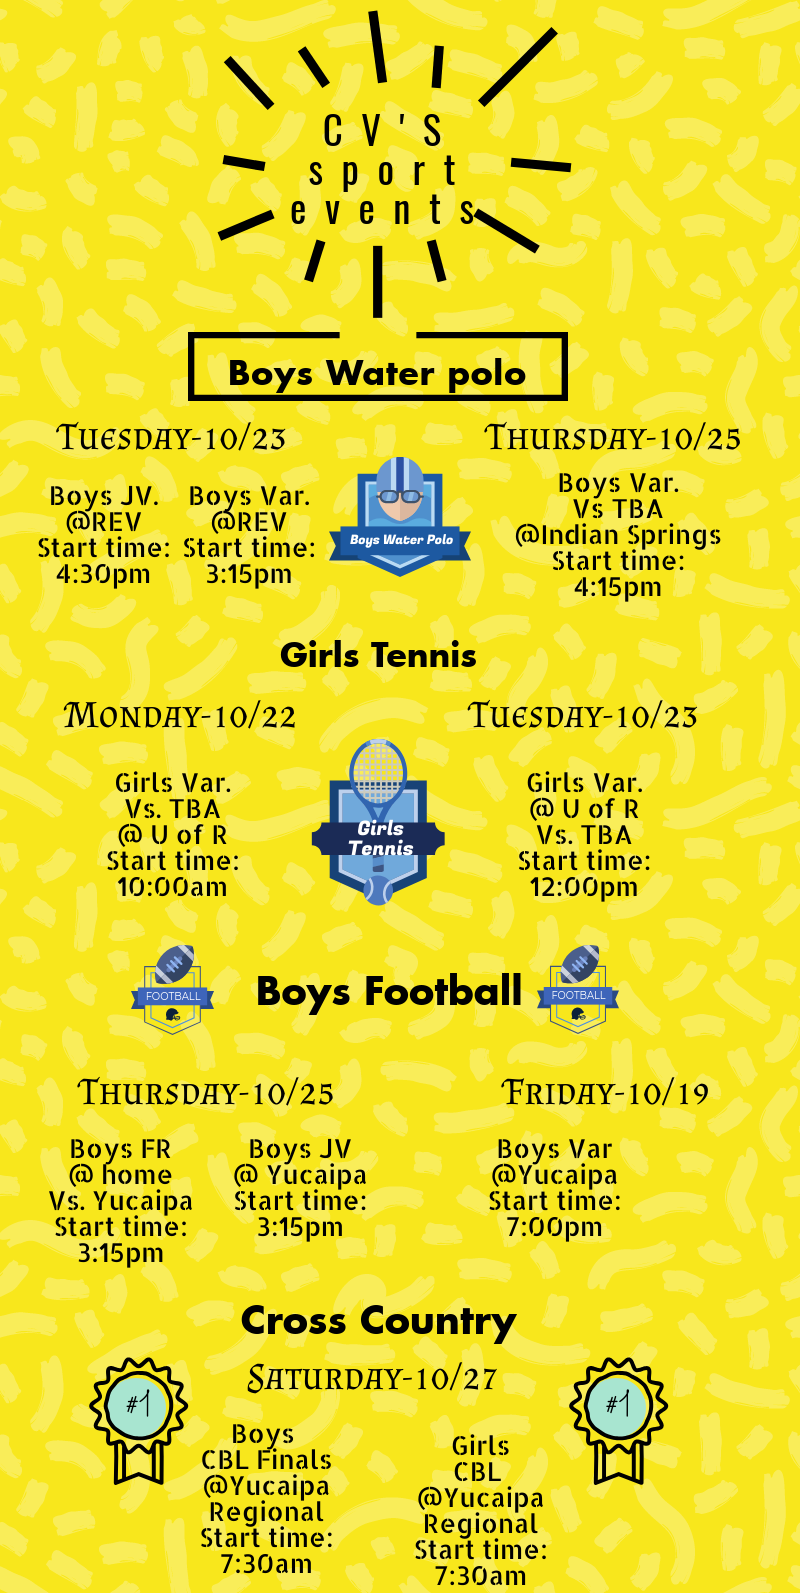 cv sports events 102218